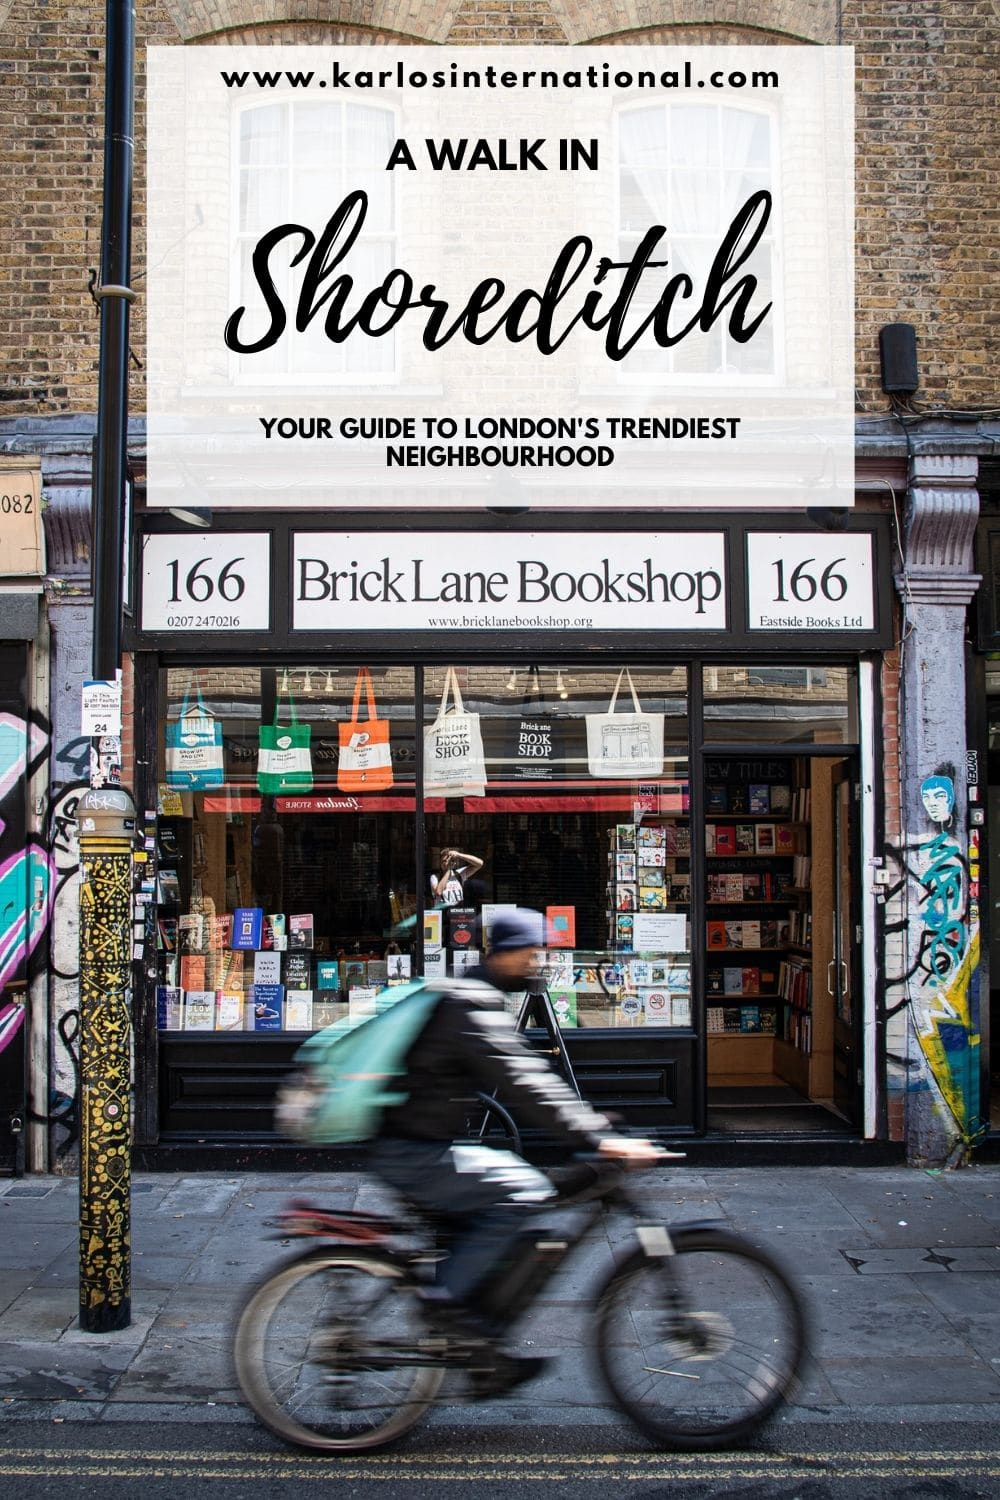 A Walk in Shoreditch - Your guide to the best things to do in Shoreditch, London's trendiest neighbourhood.